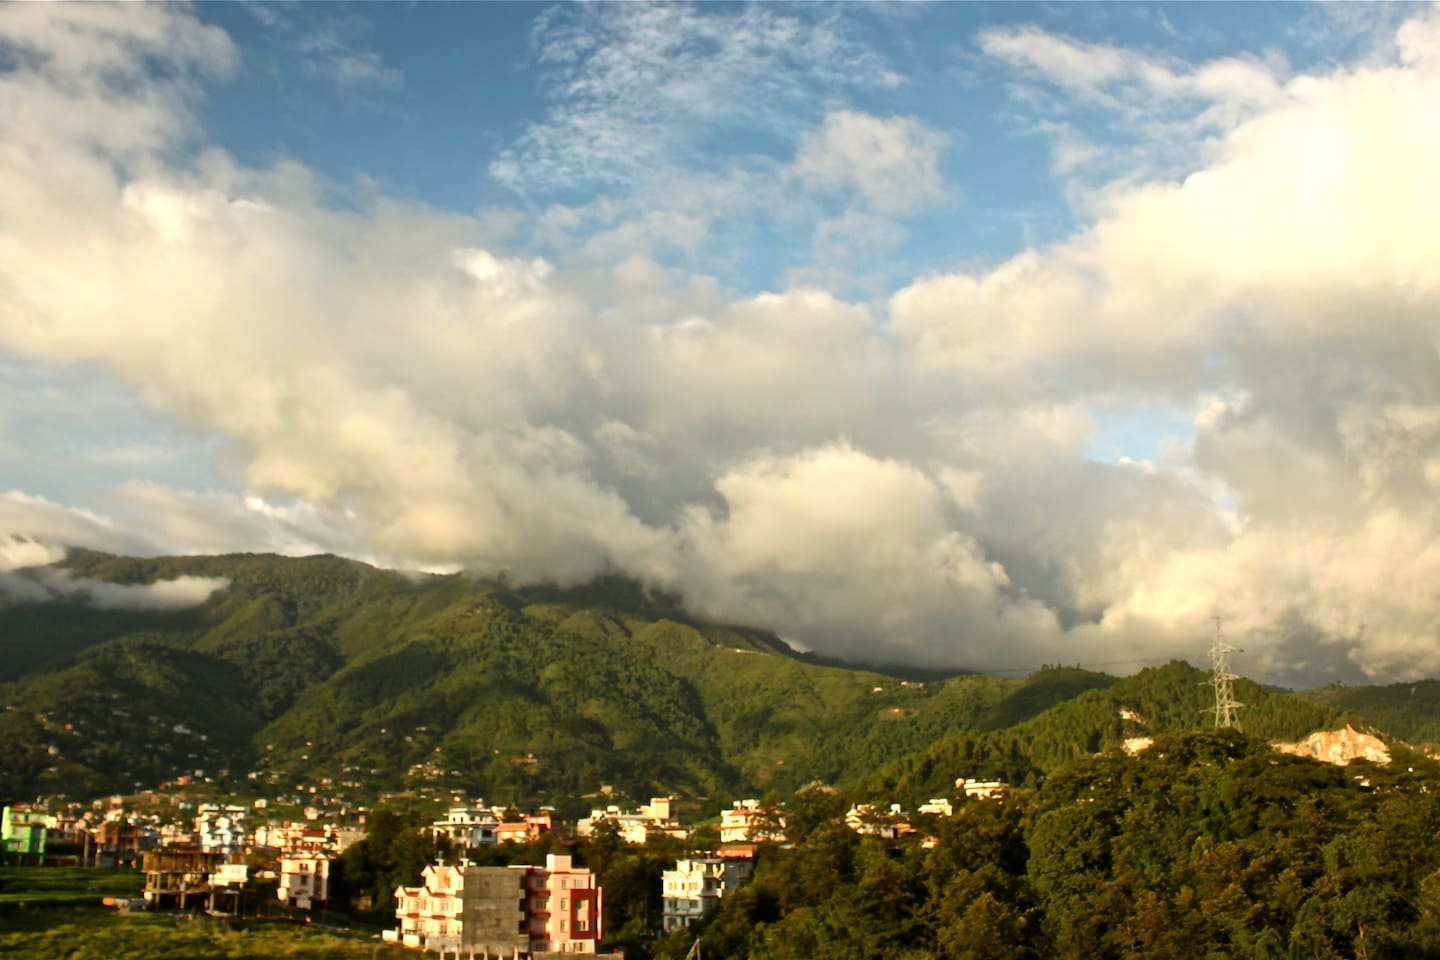 A view of the Shivapuri Hills from the roof top enveloped by the amazing clouds. Taken May last year